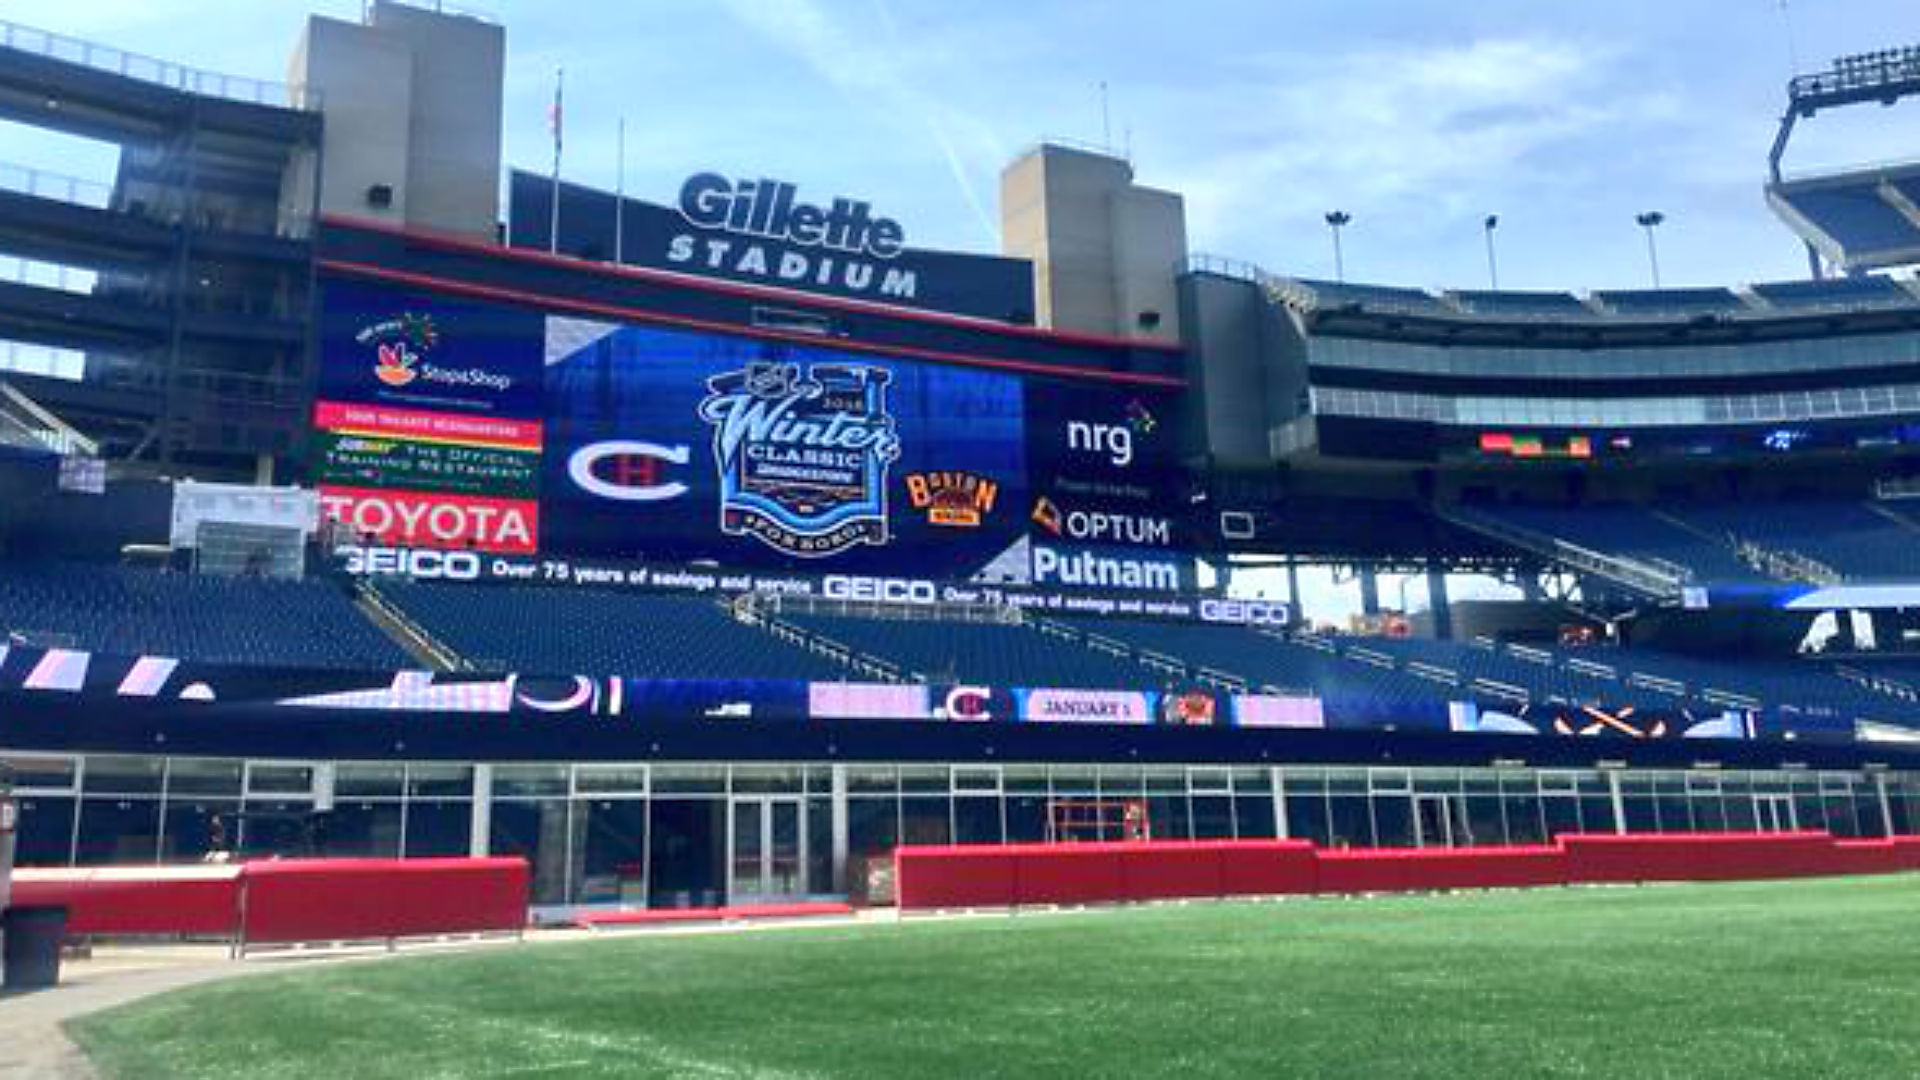 Coolest thing in Boston? 2016 Winter Classic announcement